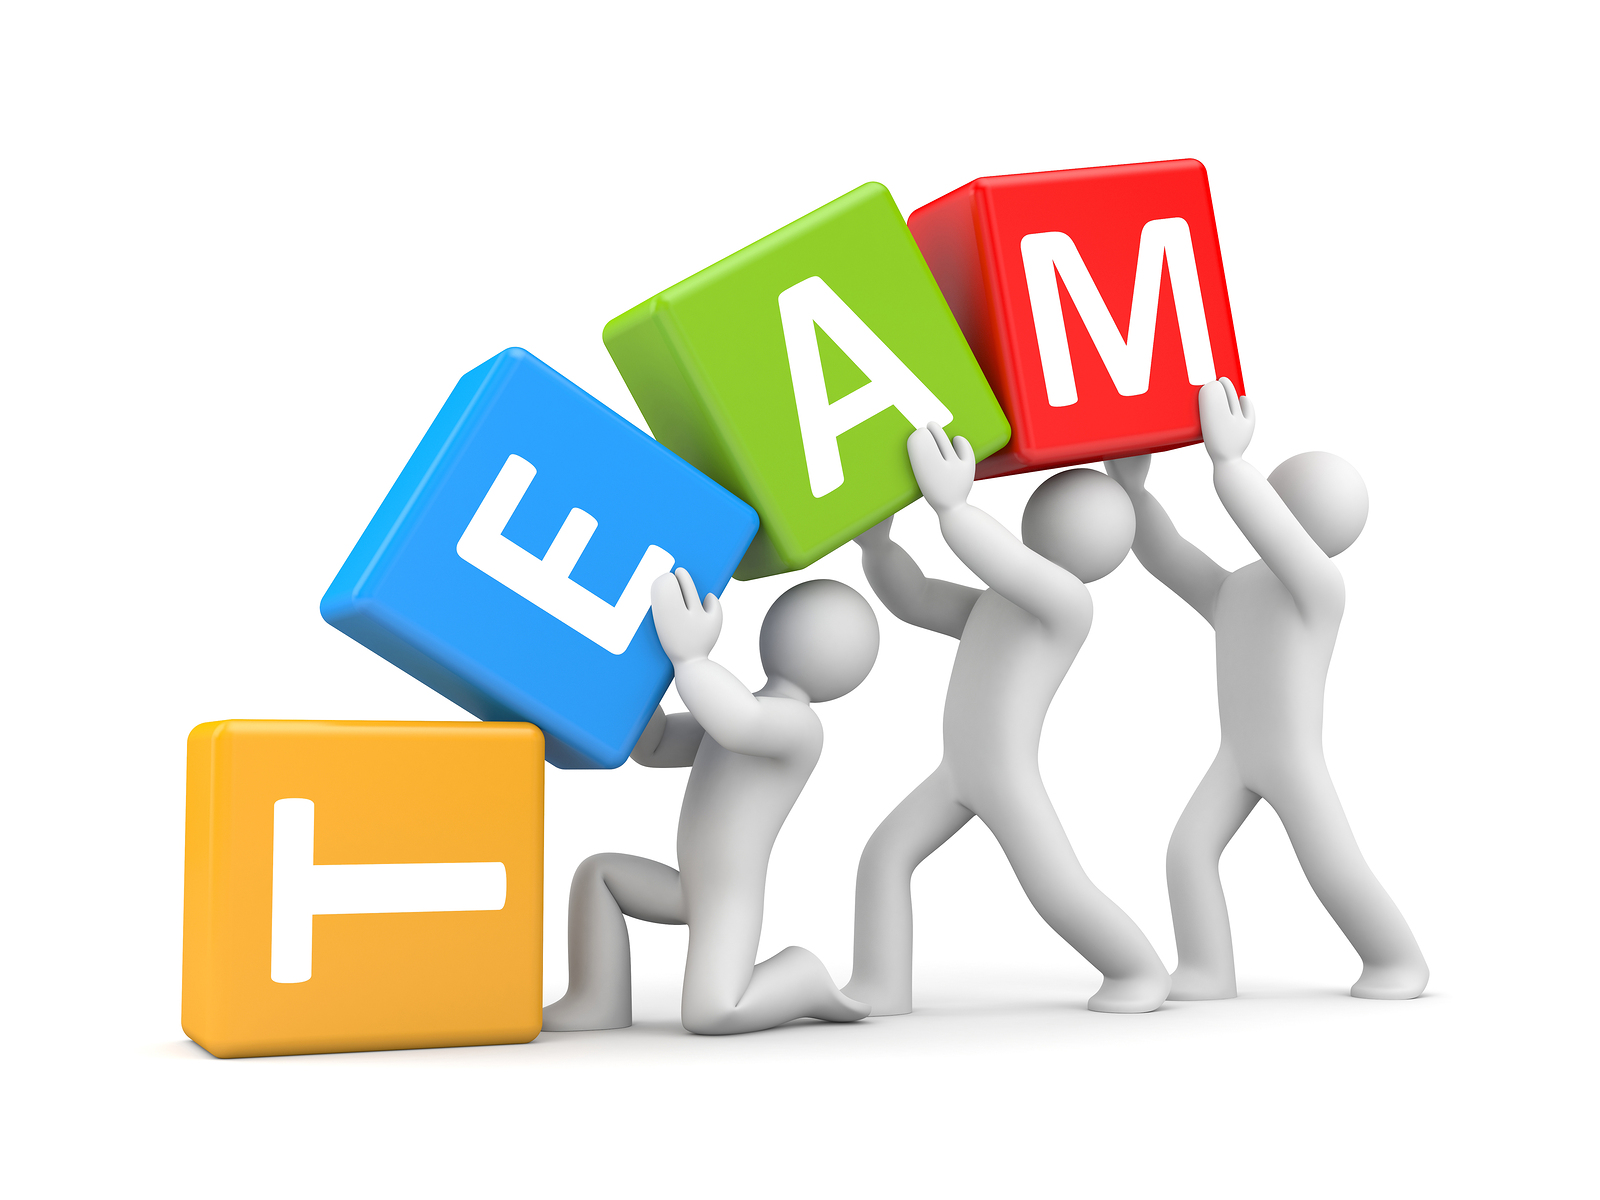 working as a team clipart clipart kid working together team building advice for small businesses